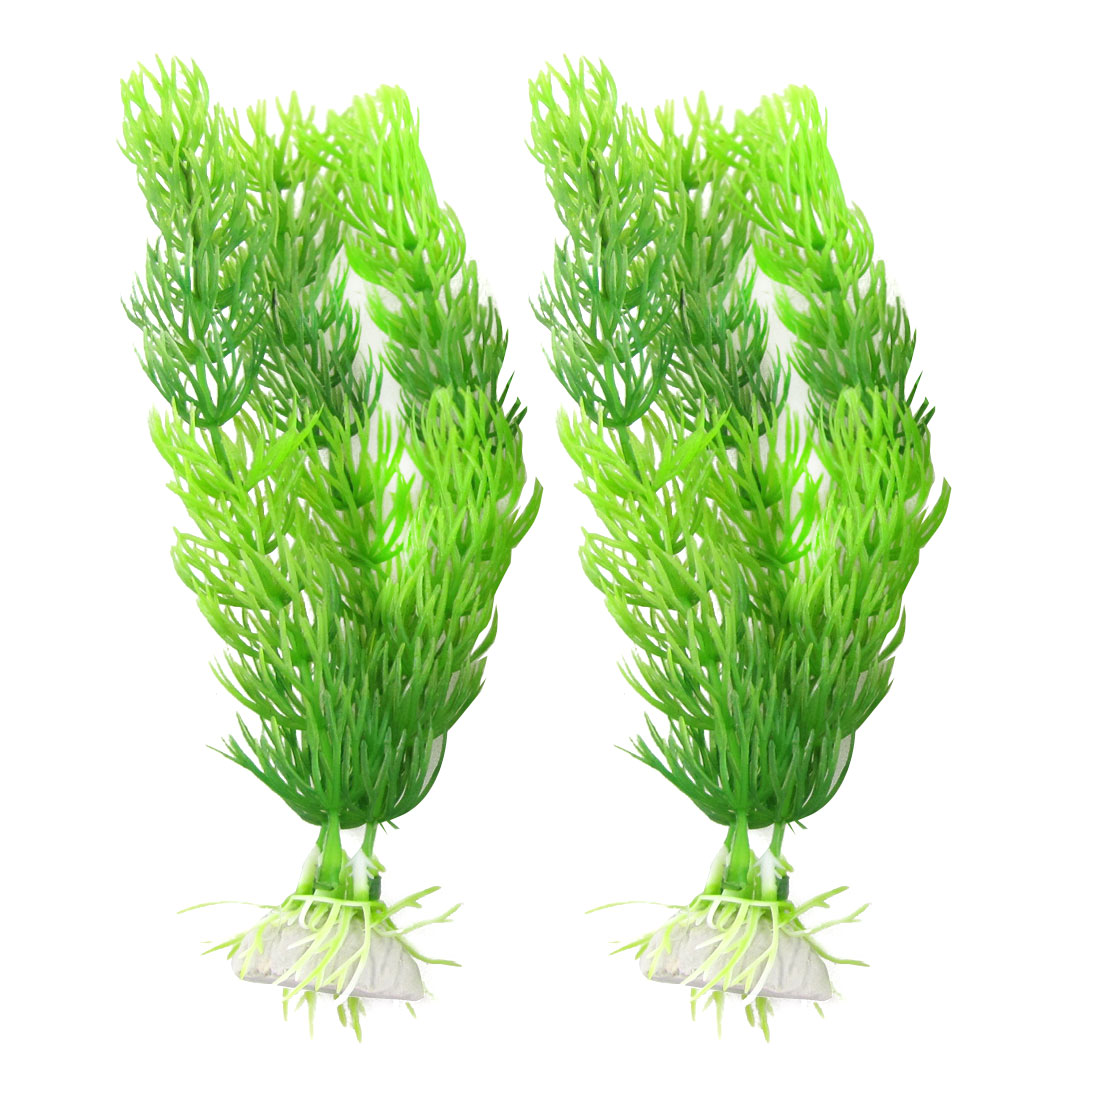 "2 Pcs 7.3"" High Green Plastic Grass Plant Decor for Fish Tank"